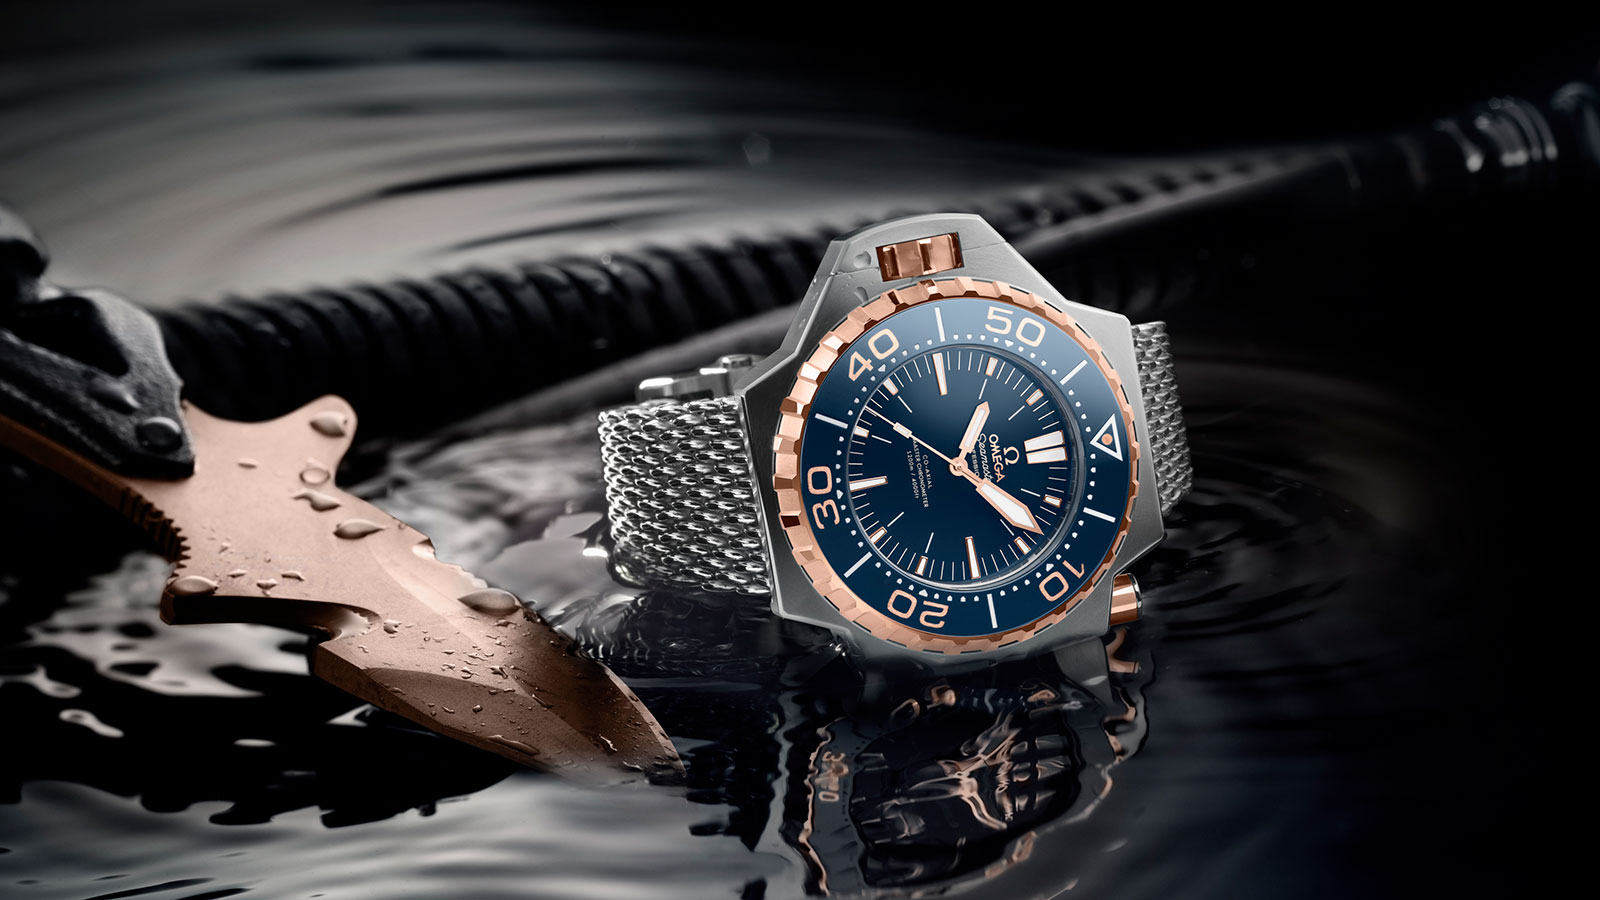 Seamaster Ploprof 1200M Ploprof 1200M Omega Co‑Axial Master Chronometer 55 x 48 mm Watch - 227.60.55.21.03.001